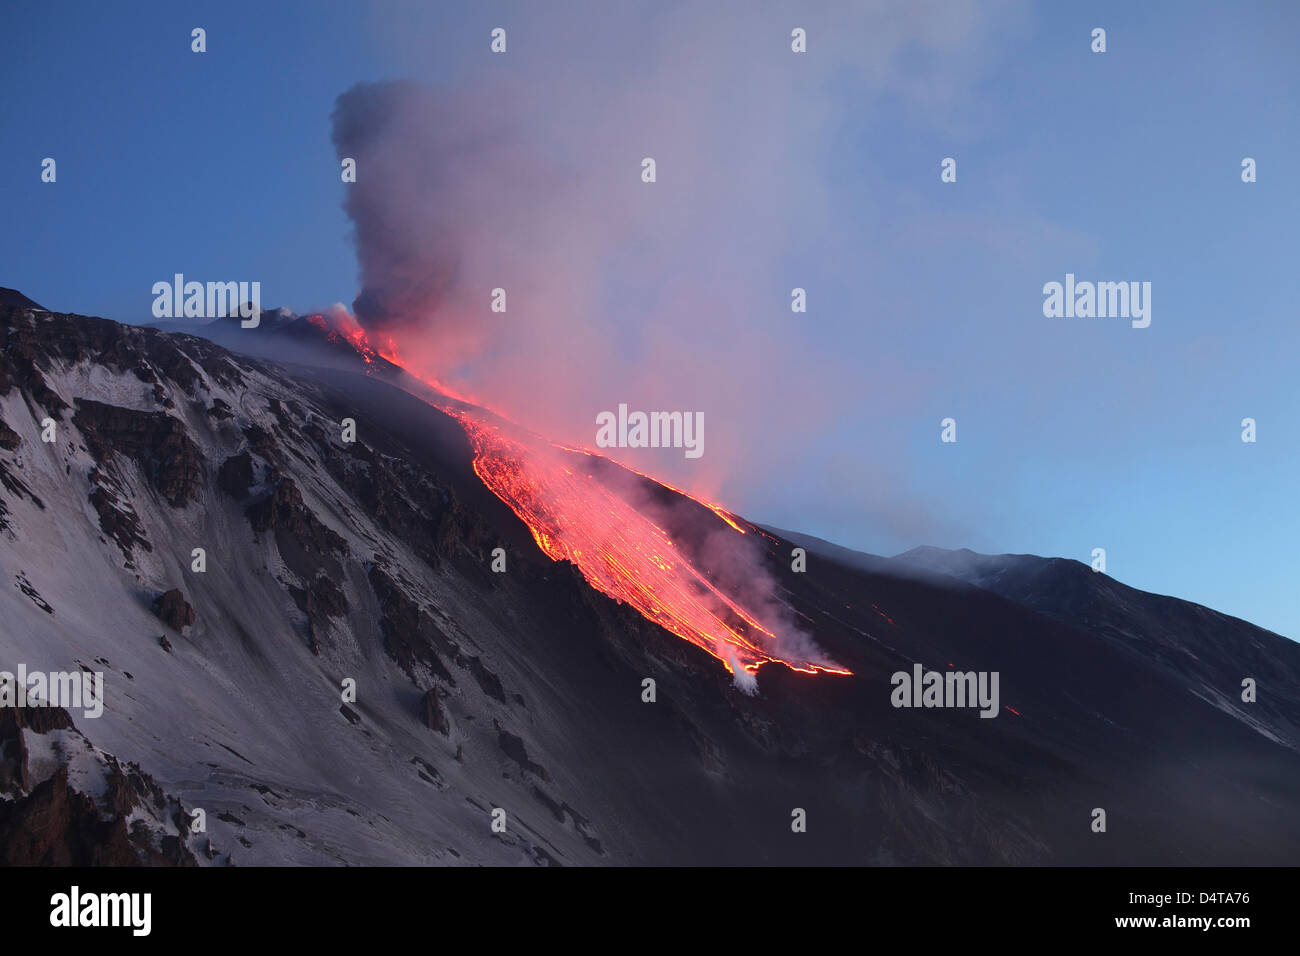 April 1, 2012 - Lava flowing into Valle del Bove at Mount Etna Volcano, Italy, following paroxysmal eruption. - Stock Image